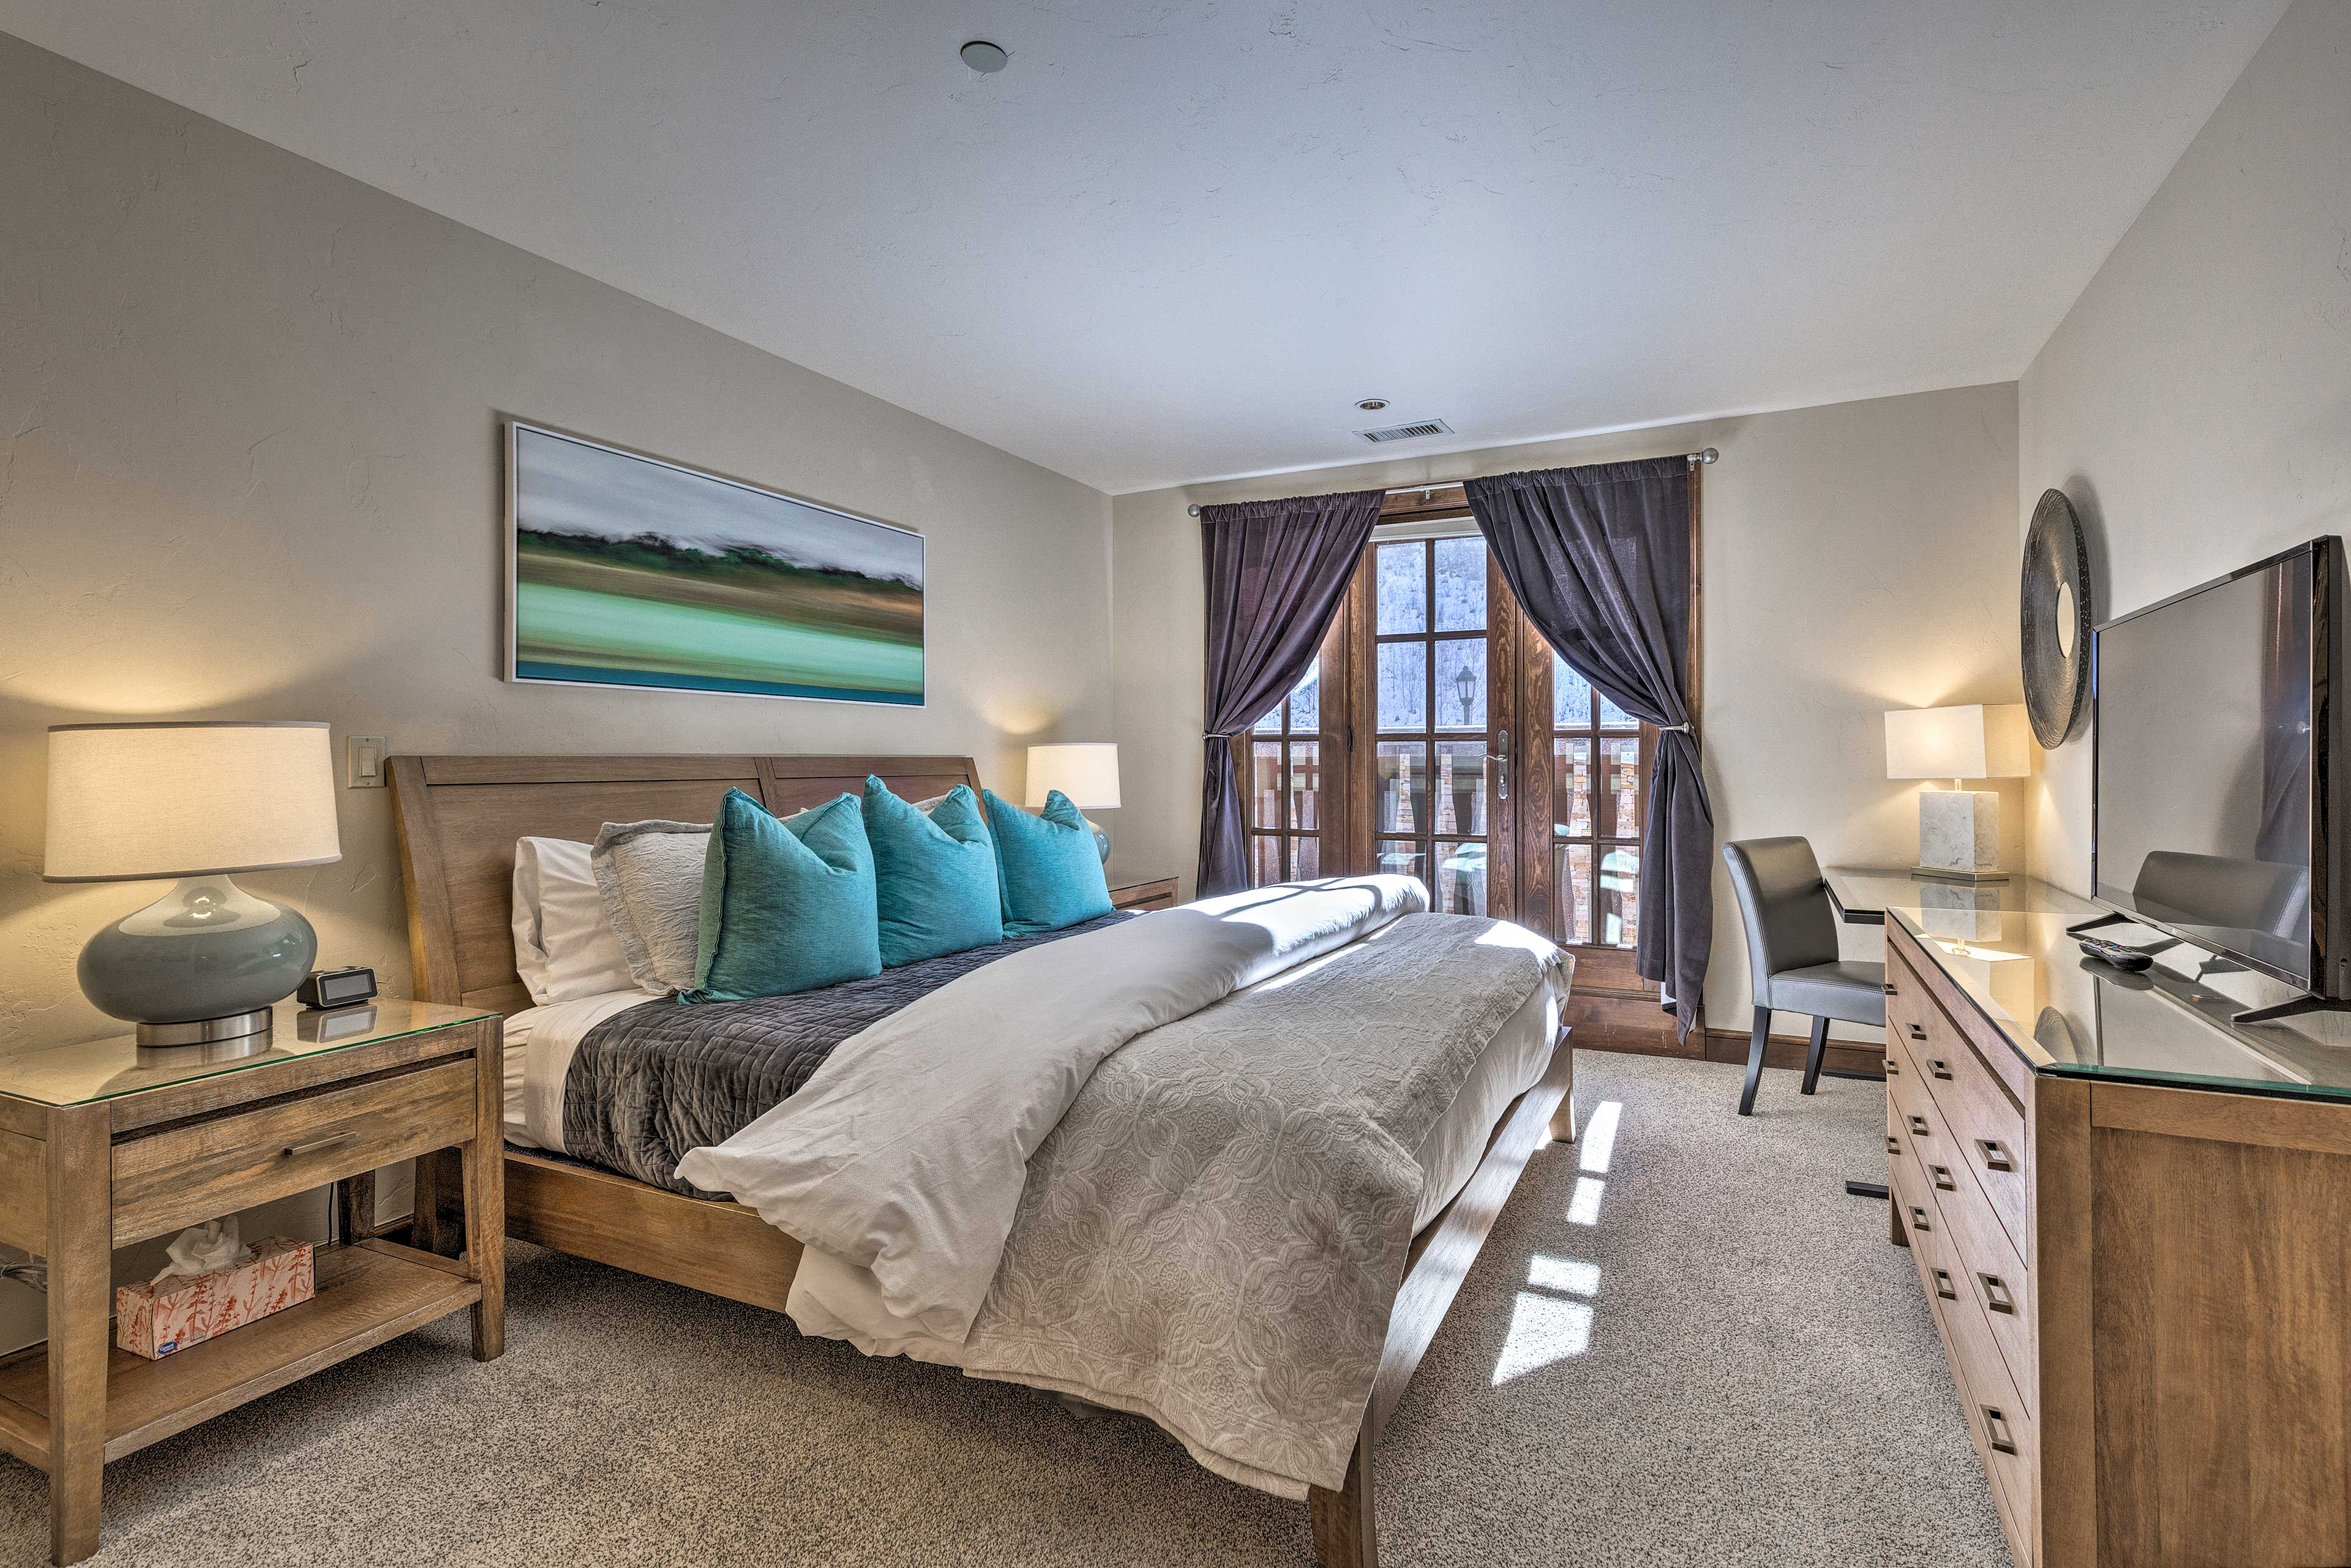 A deep night's sleep awaits you in this plush king-sized bed.